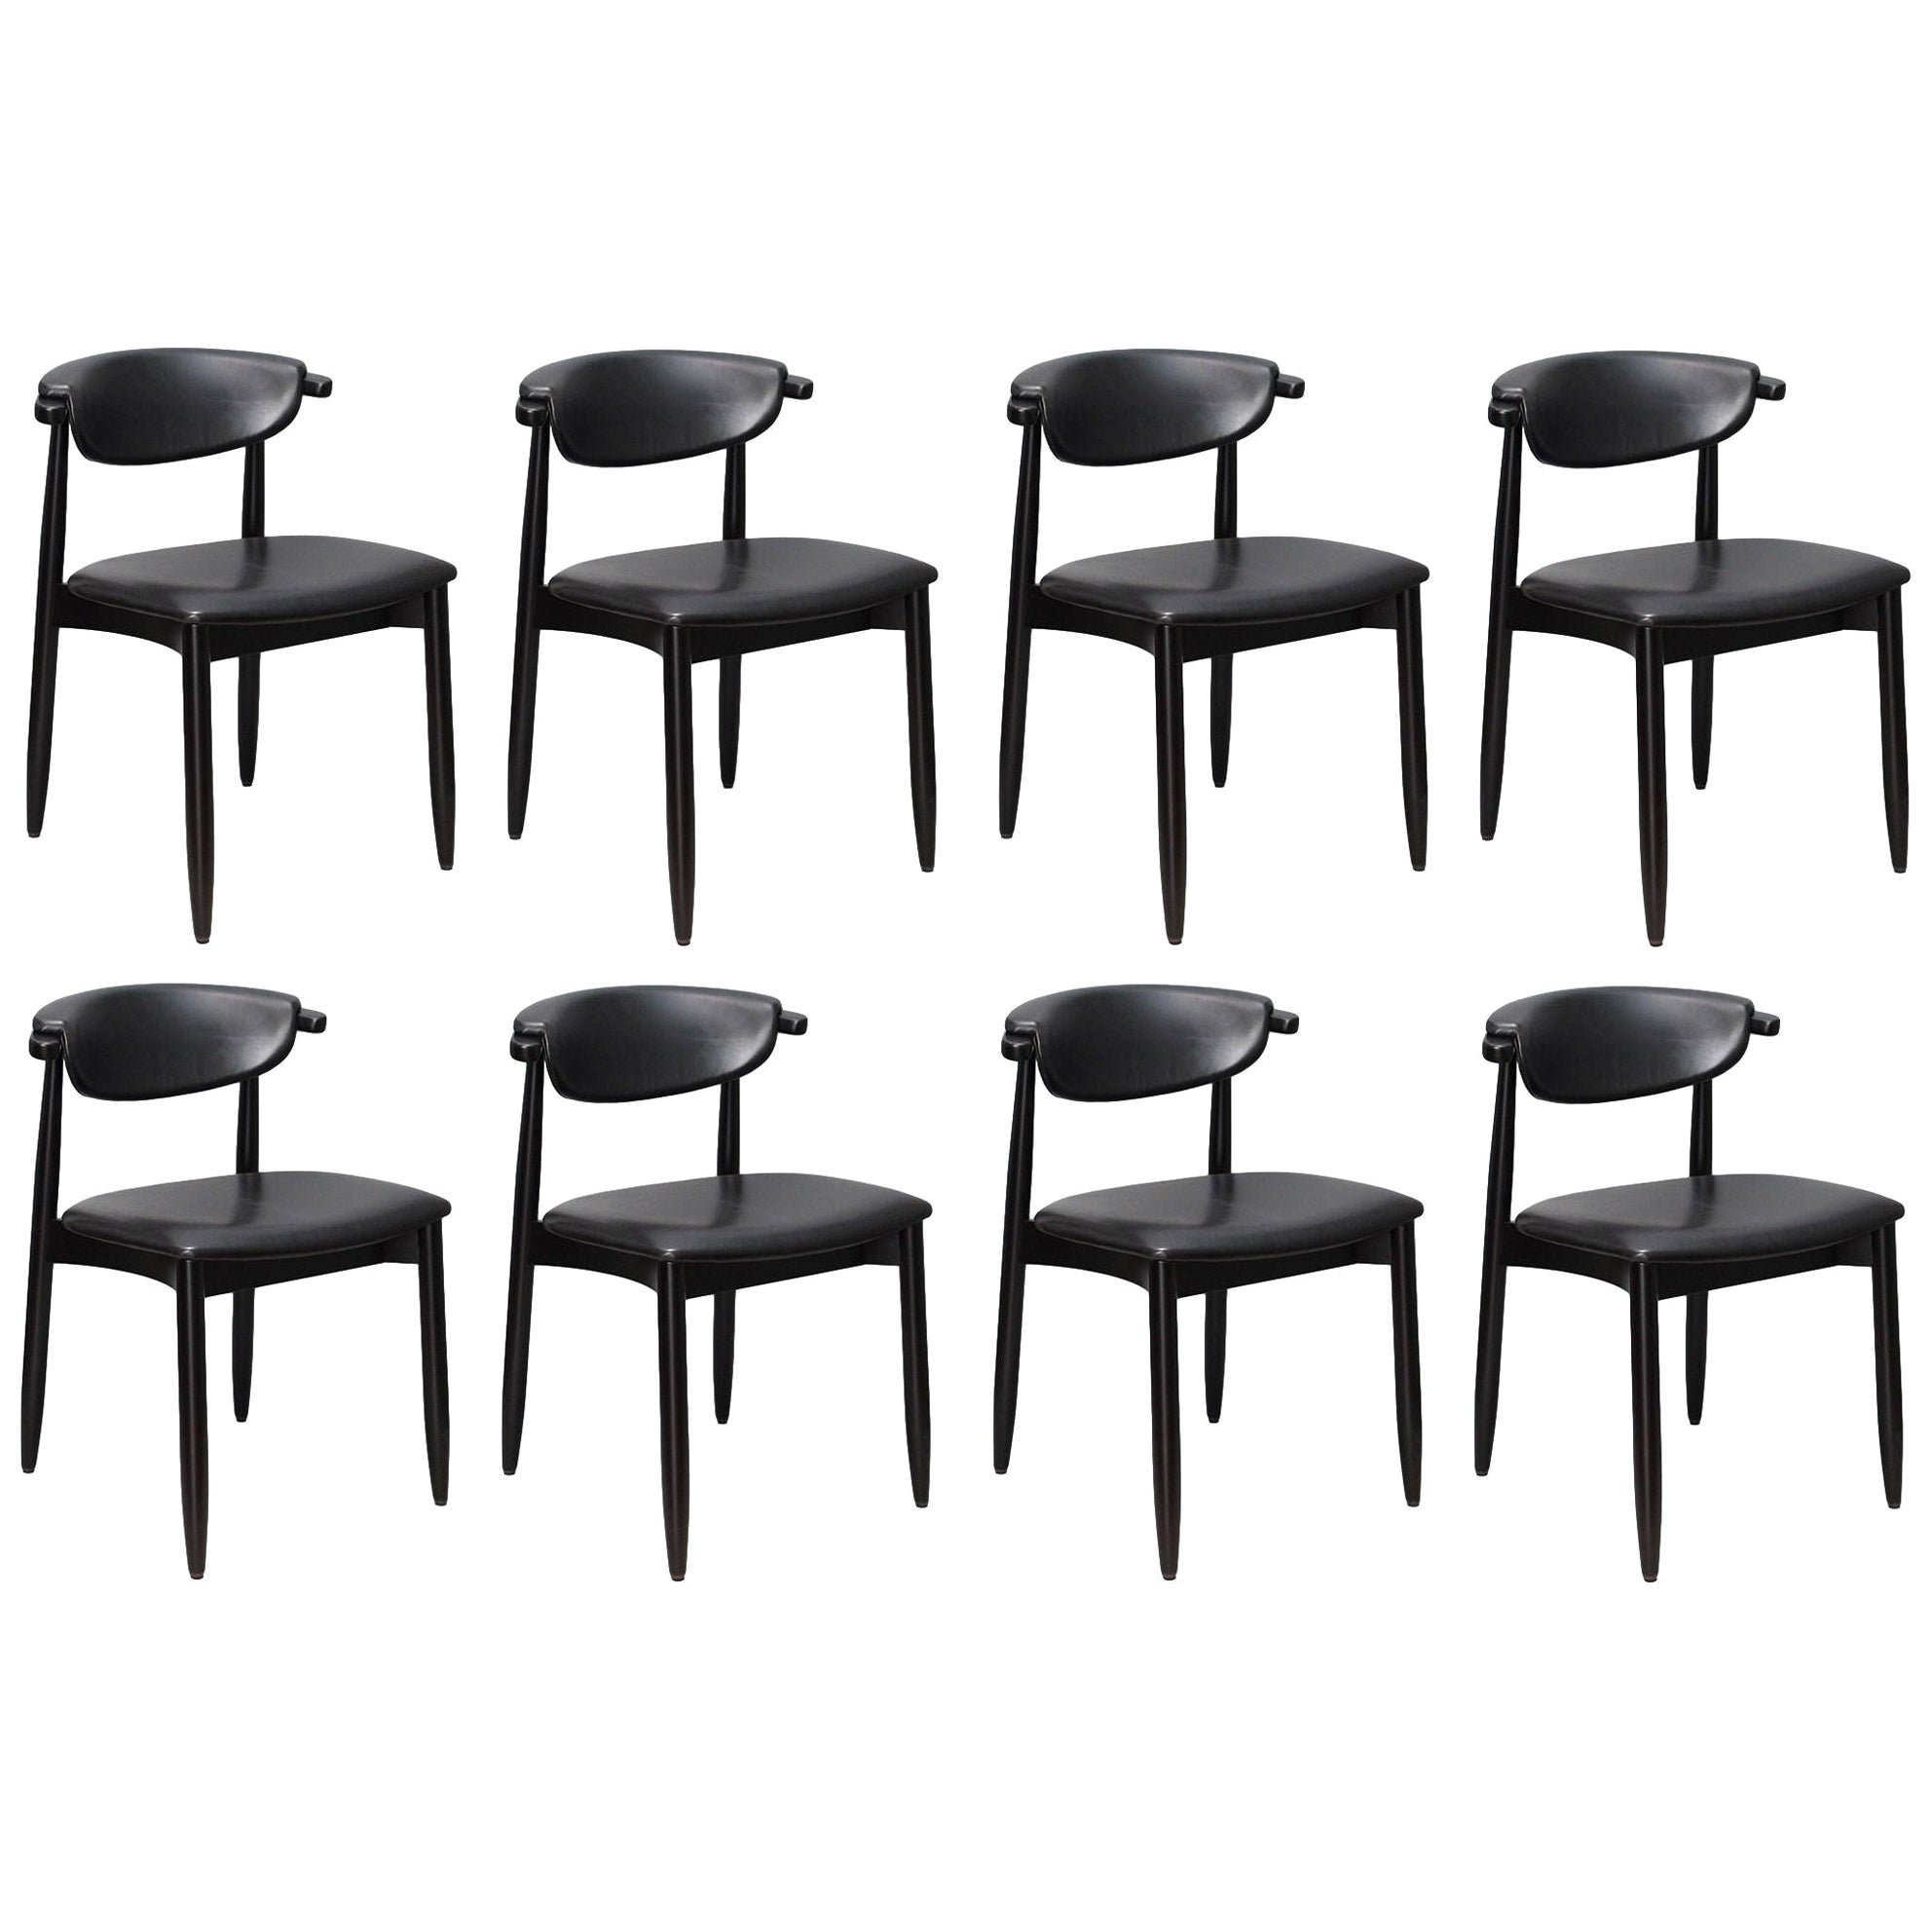 Mid-Century Modern Dining Chairs, Set of 8